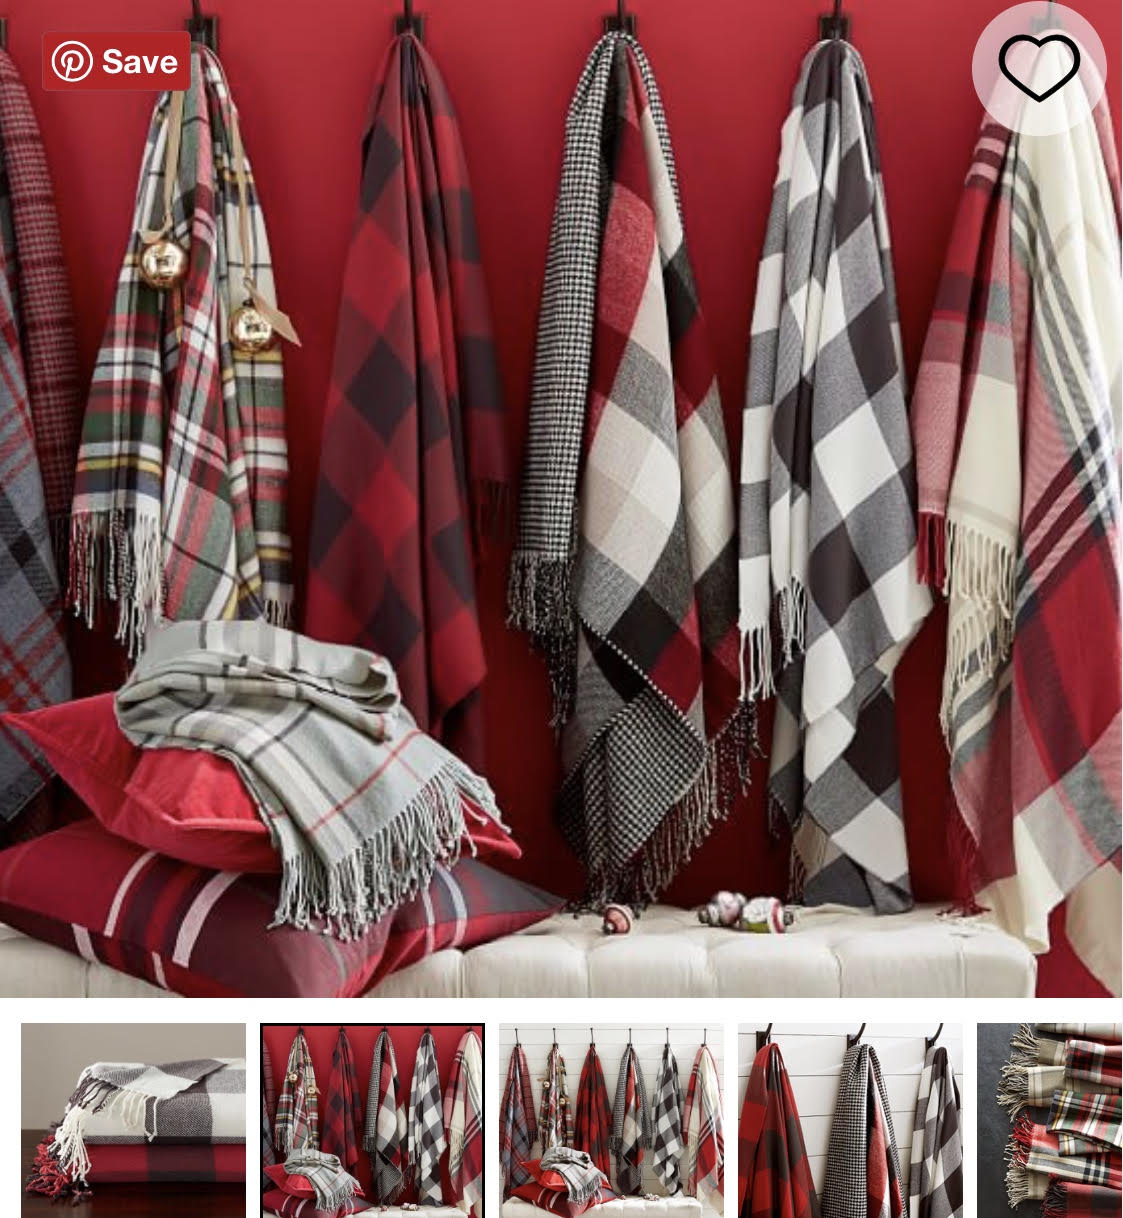 pottery barn blanket.jpg